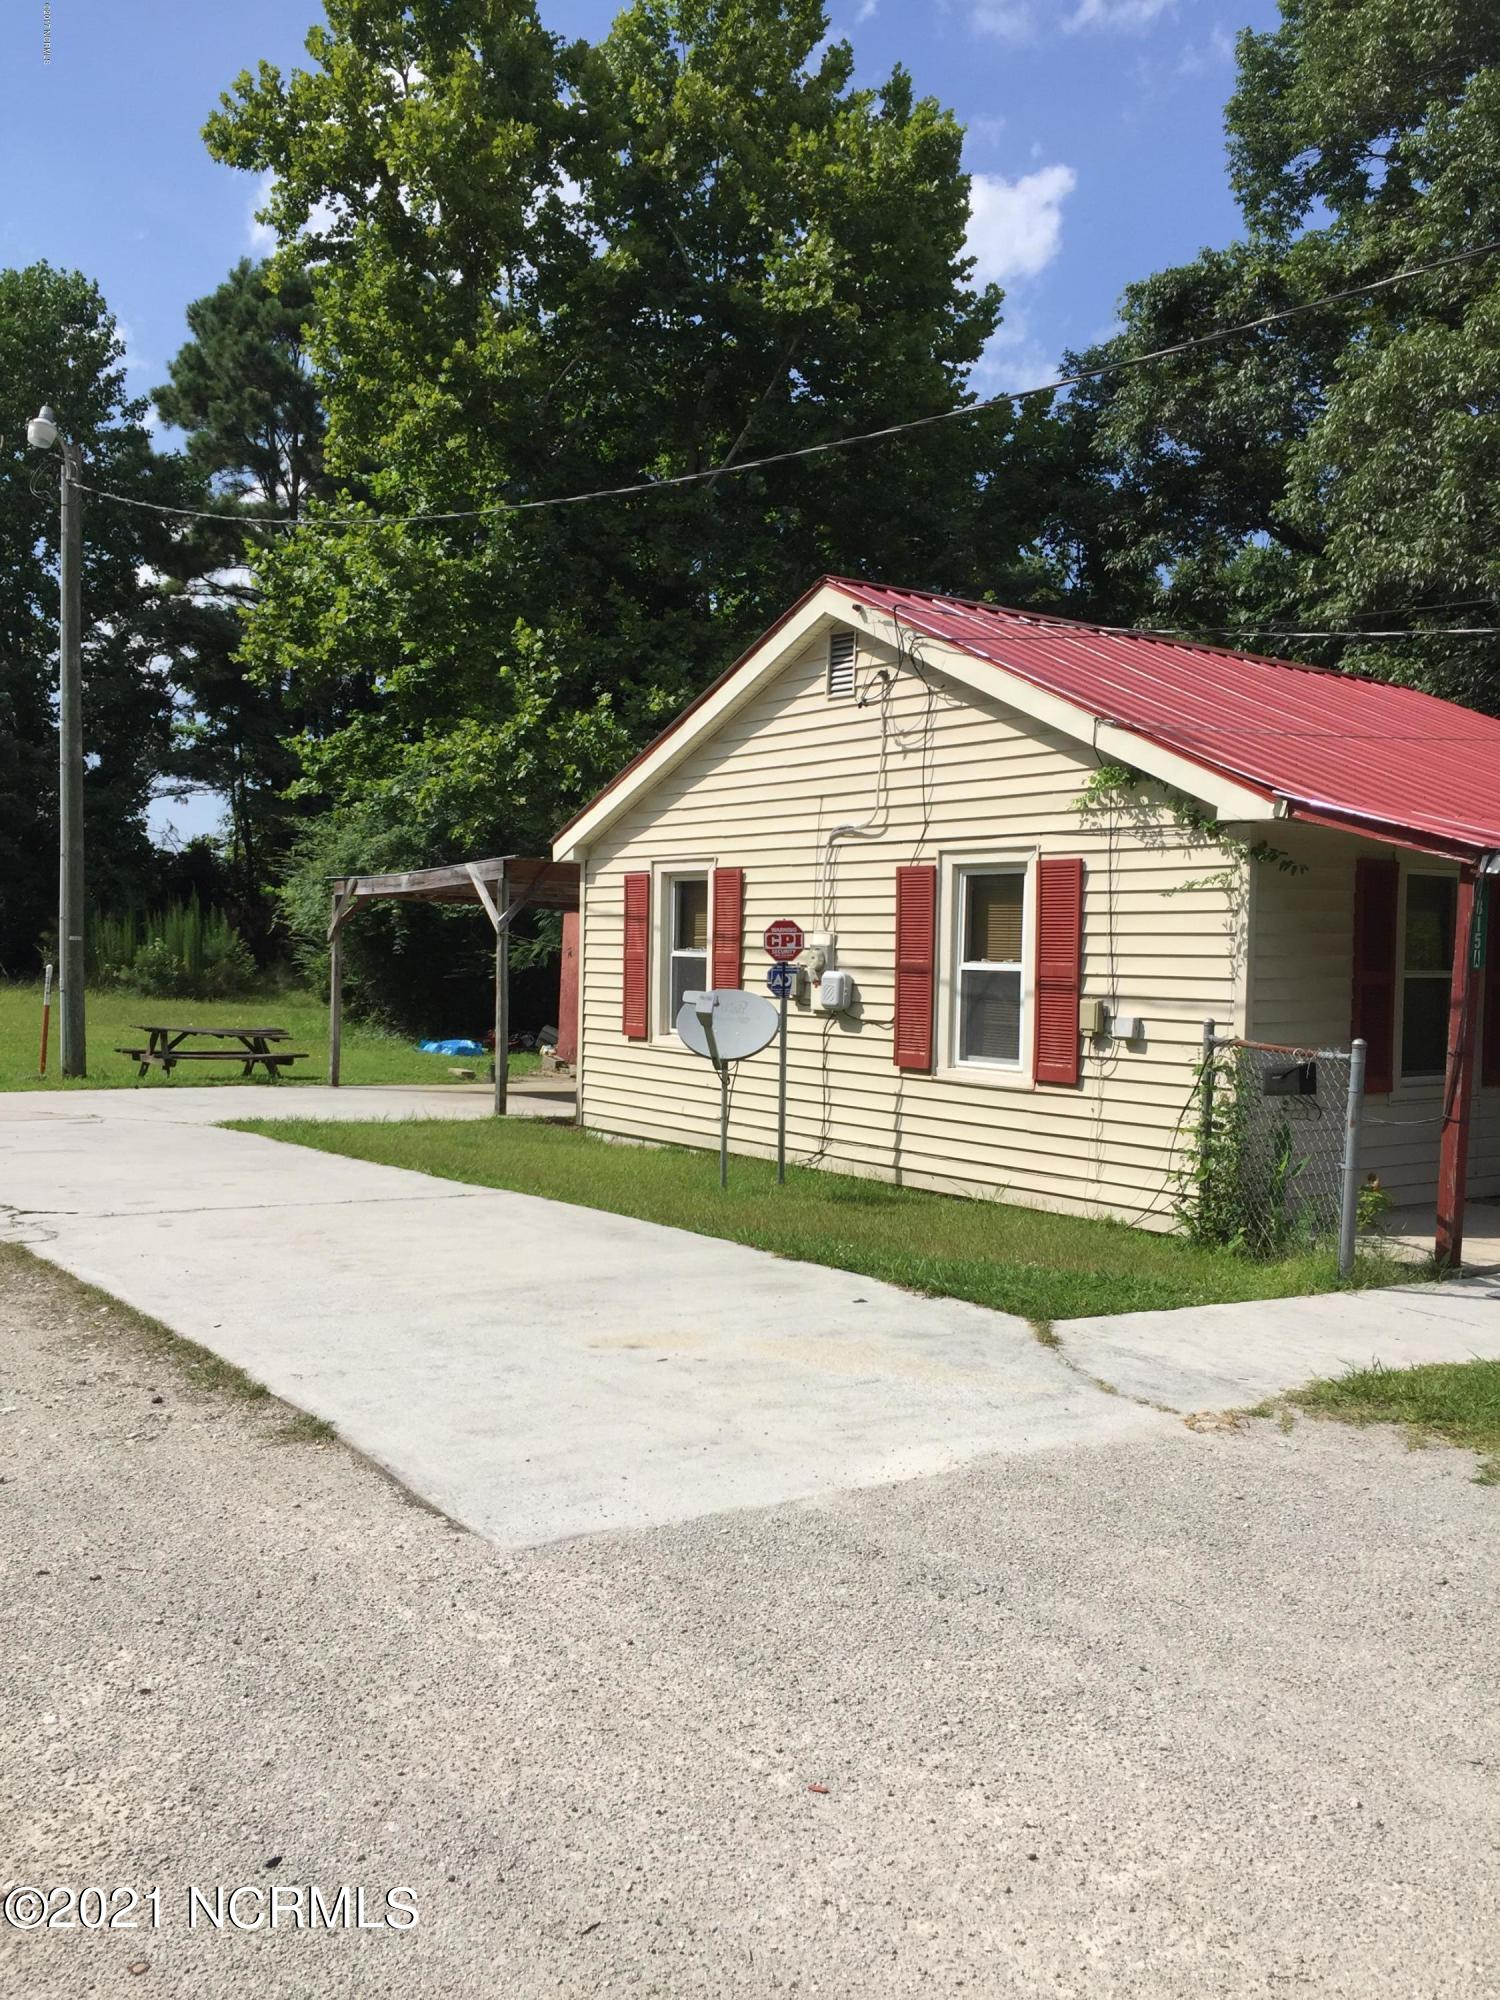 This property is a 2 bedroom 1 bath home that is zoned commercial that could have multiple uses.  If purchased as a residential property will only be cash or conventional loan.  Would make a great tattoo parlor/salon, etc.